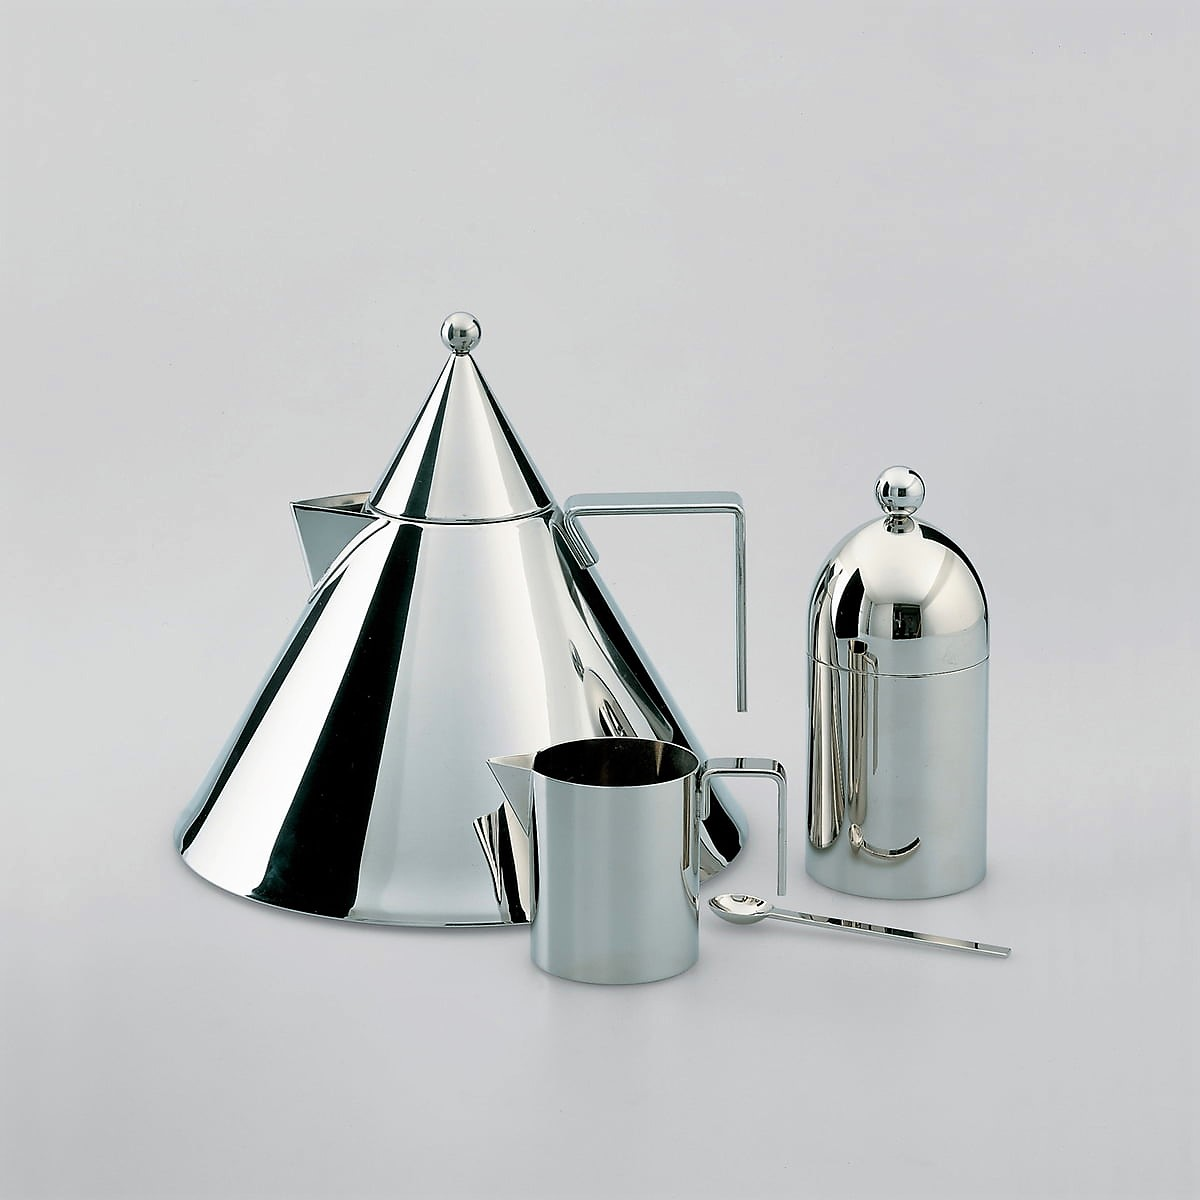 Officina Alessi - Aldo Rossi Kettle Il Conico, Rossi Sugar Bowl & Rossi Creamer Stainless steel